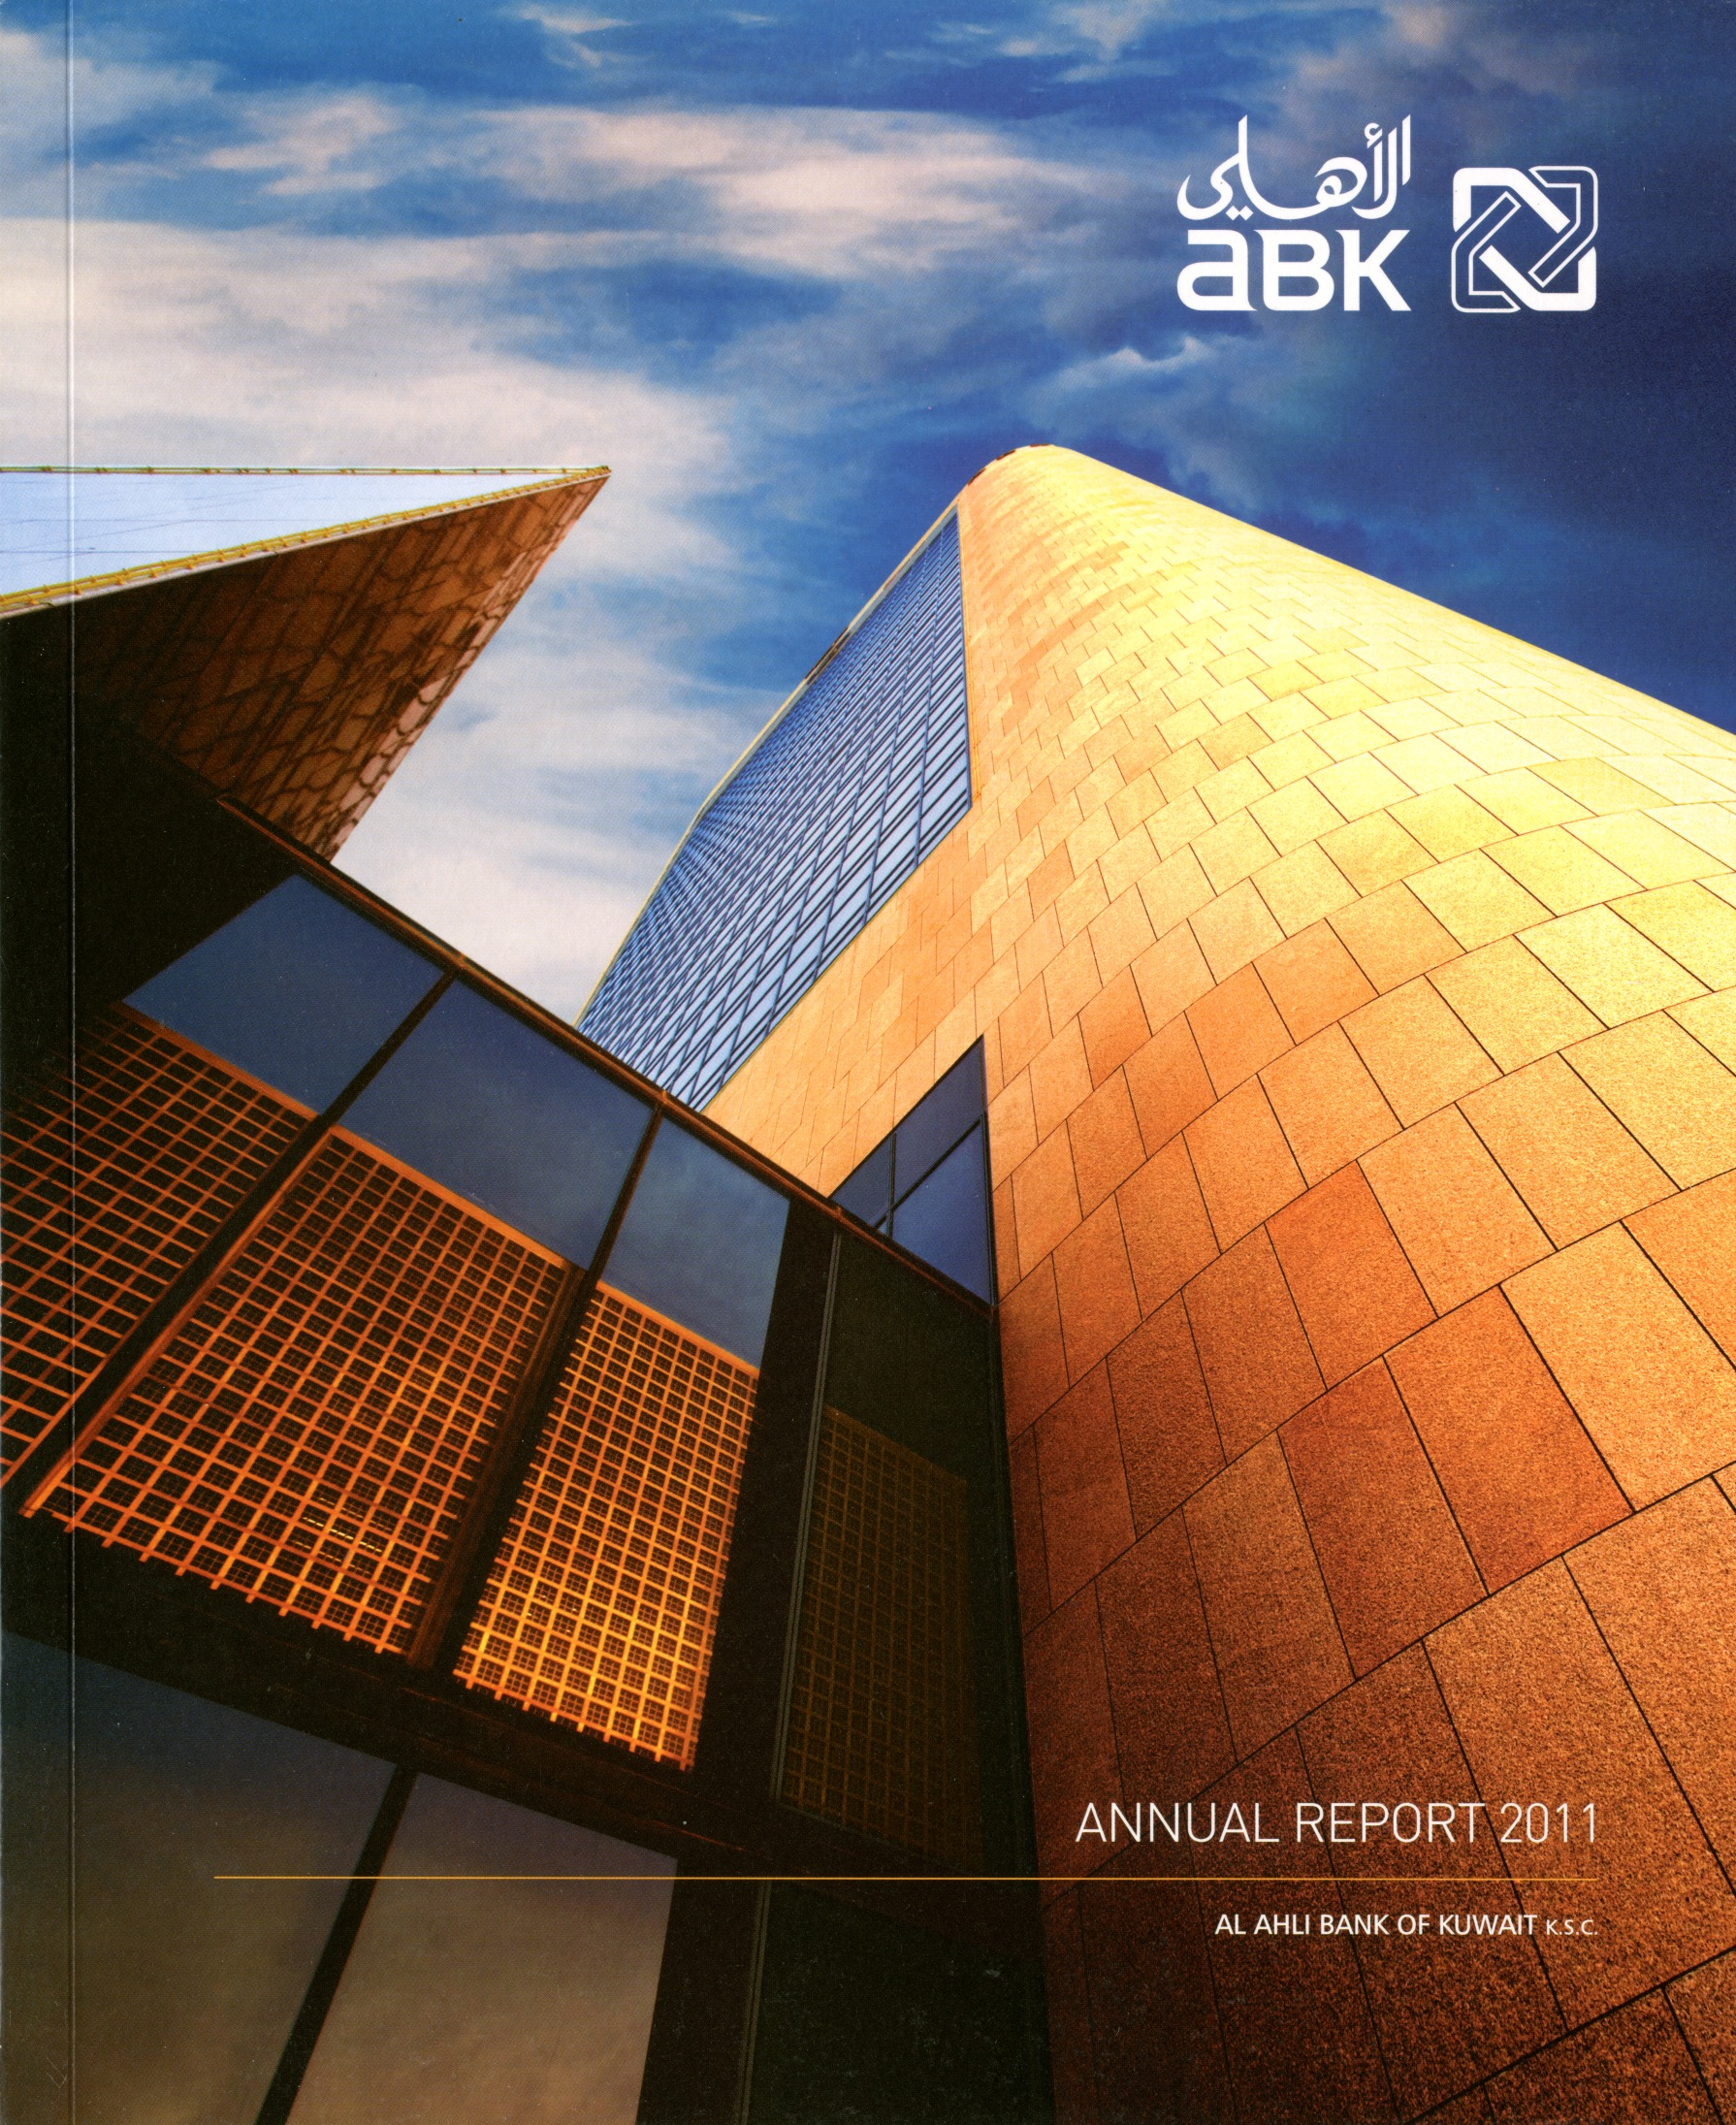 lacp 2011  12 vision awards annual report competition